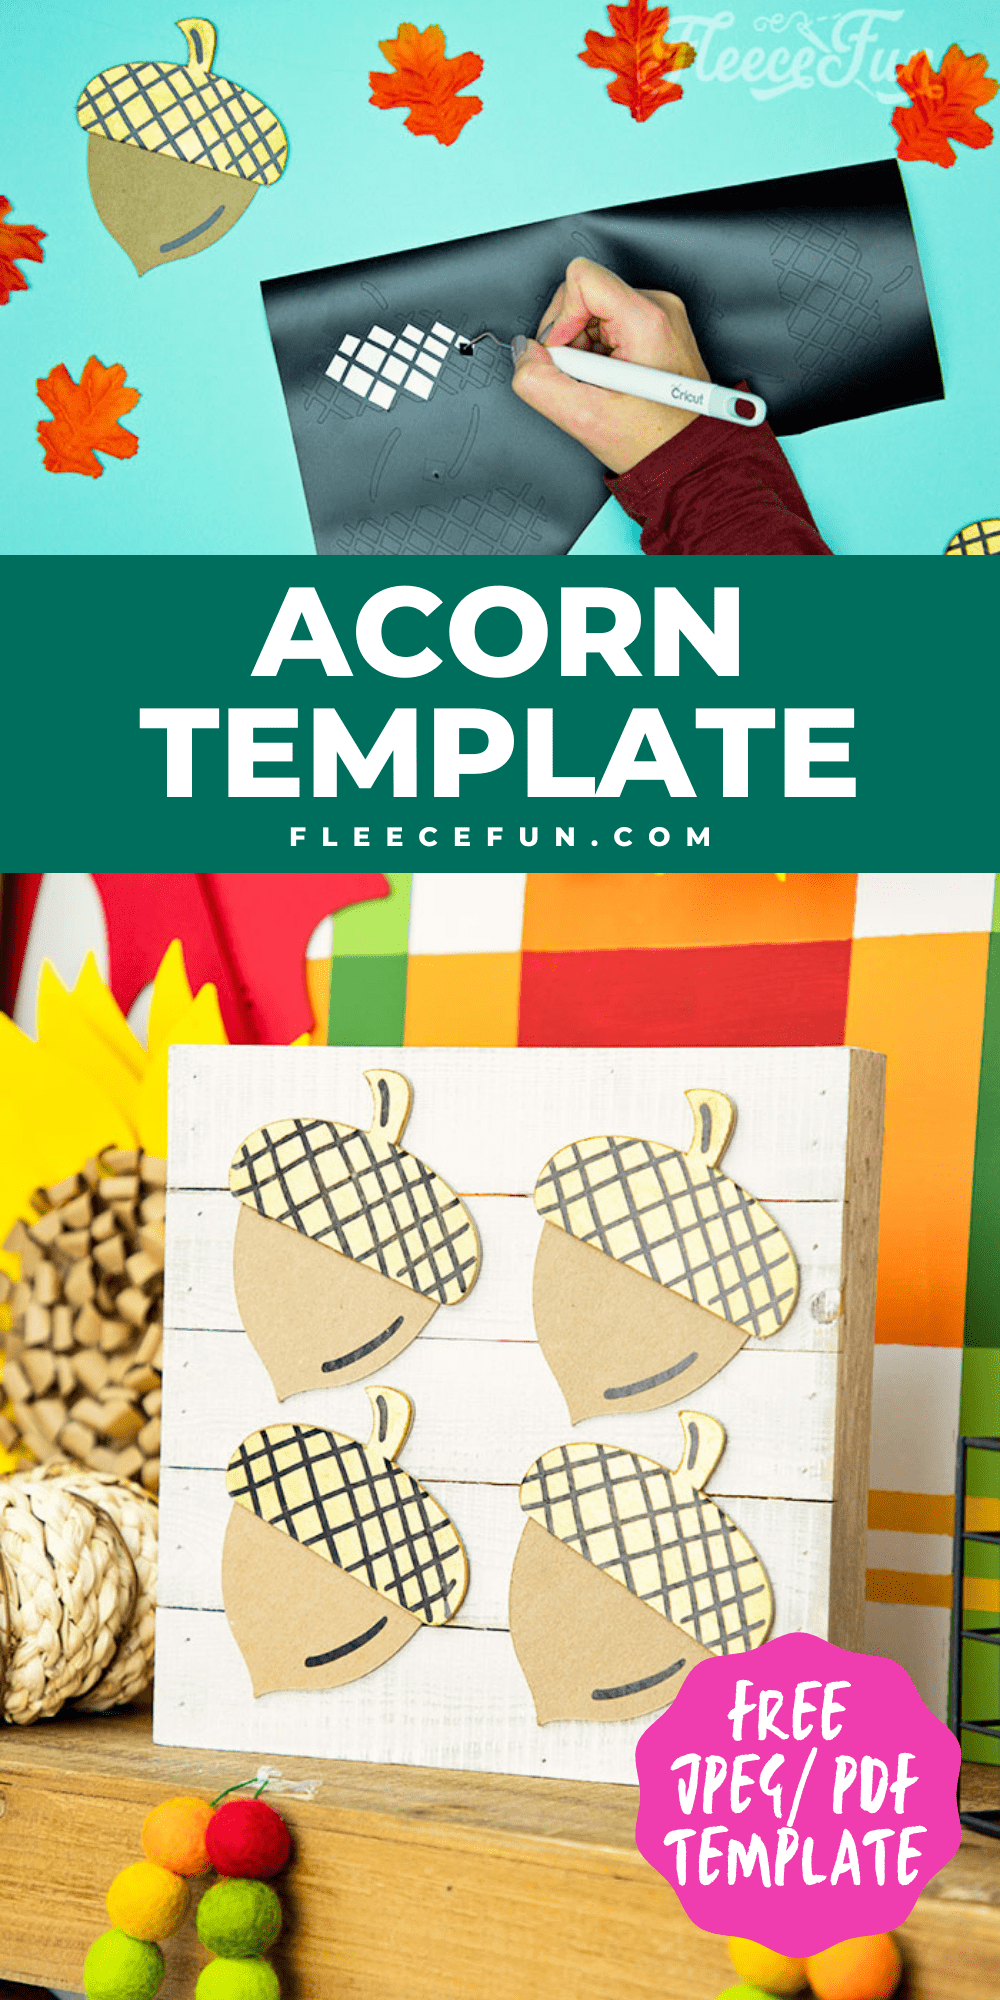 This Free Acorn template is the perfect little helper for making cute fall décor! The files come in JPEG and PDF so you can print up a template or upload it to Cricut Design Space. I'm going to show you just one of the ways you can use this template - but this versatile Acorn template can be used in many ways.